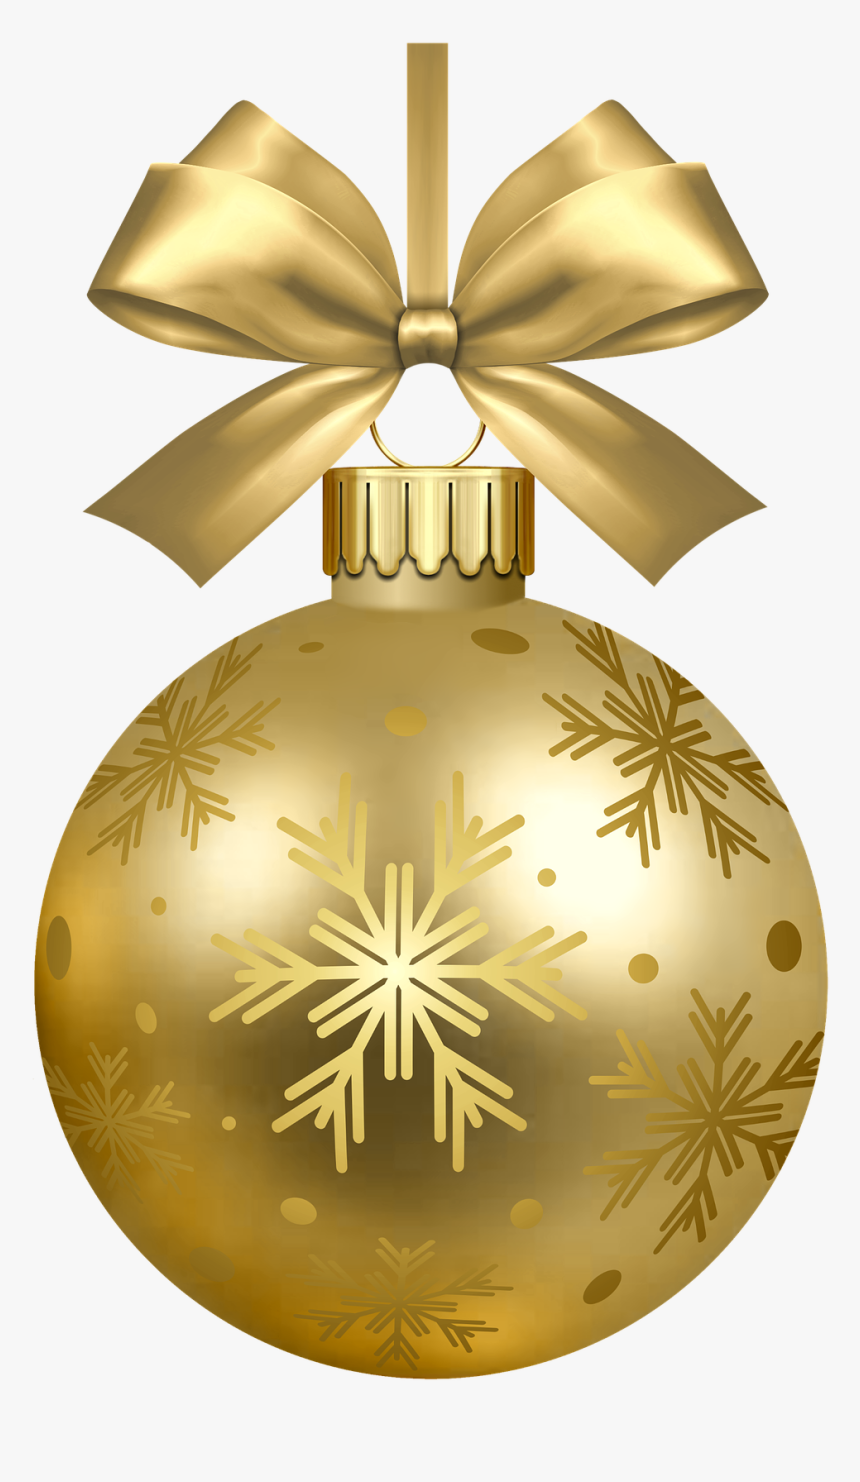 Christmas Ornament,christmas Decoration,holiday Ornament,ornament,clip - Hanging Green Christmas Ornaments, HD Png Download, Free Download